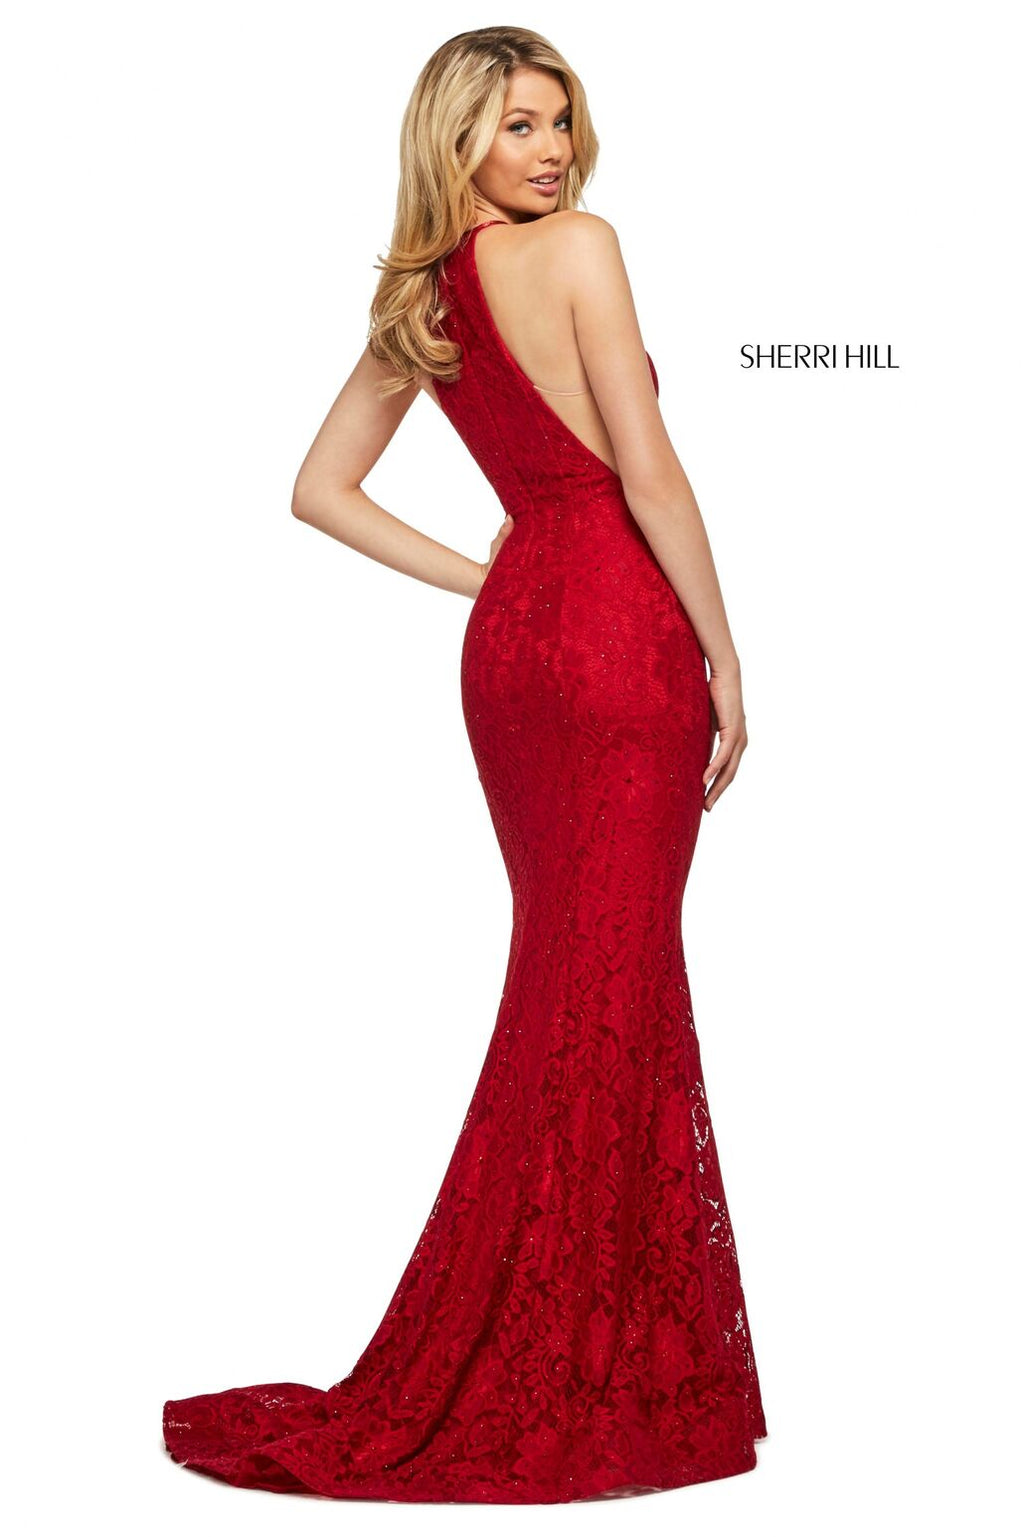 This Sherri Hill 53361 fitted stretch lace dress in red features a high cut halter style neckline and a skirt slit.